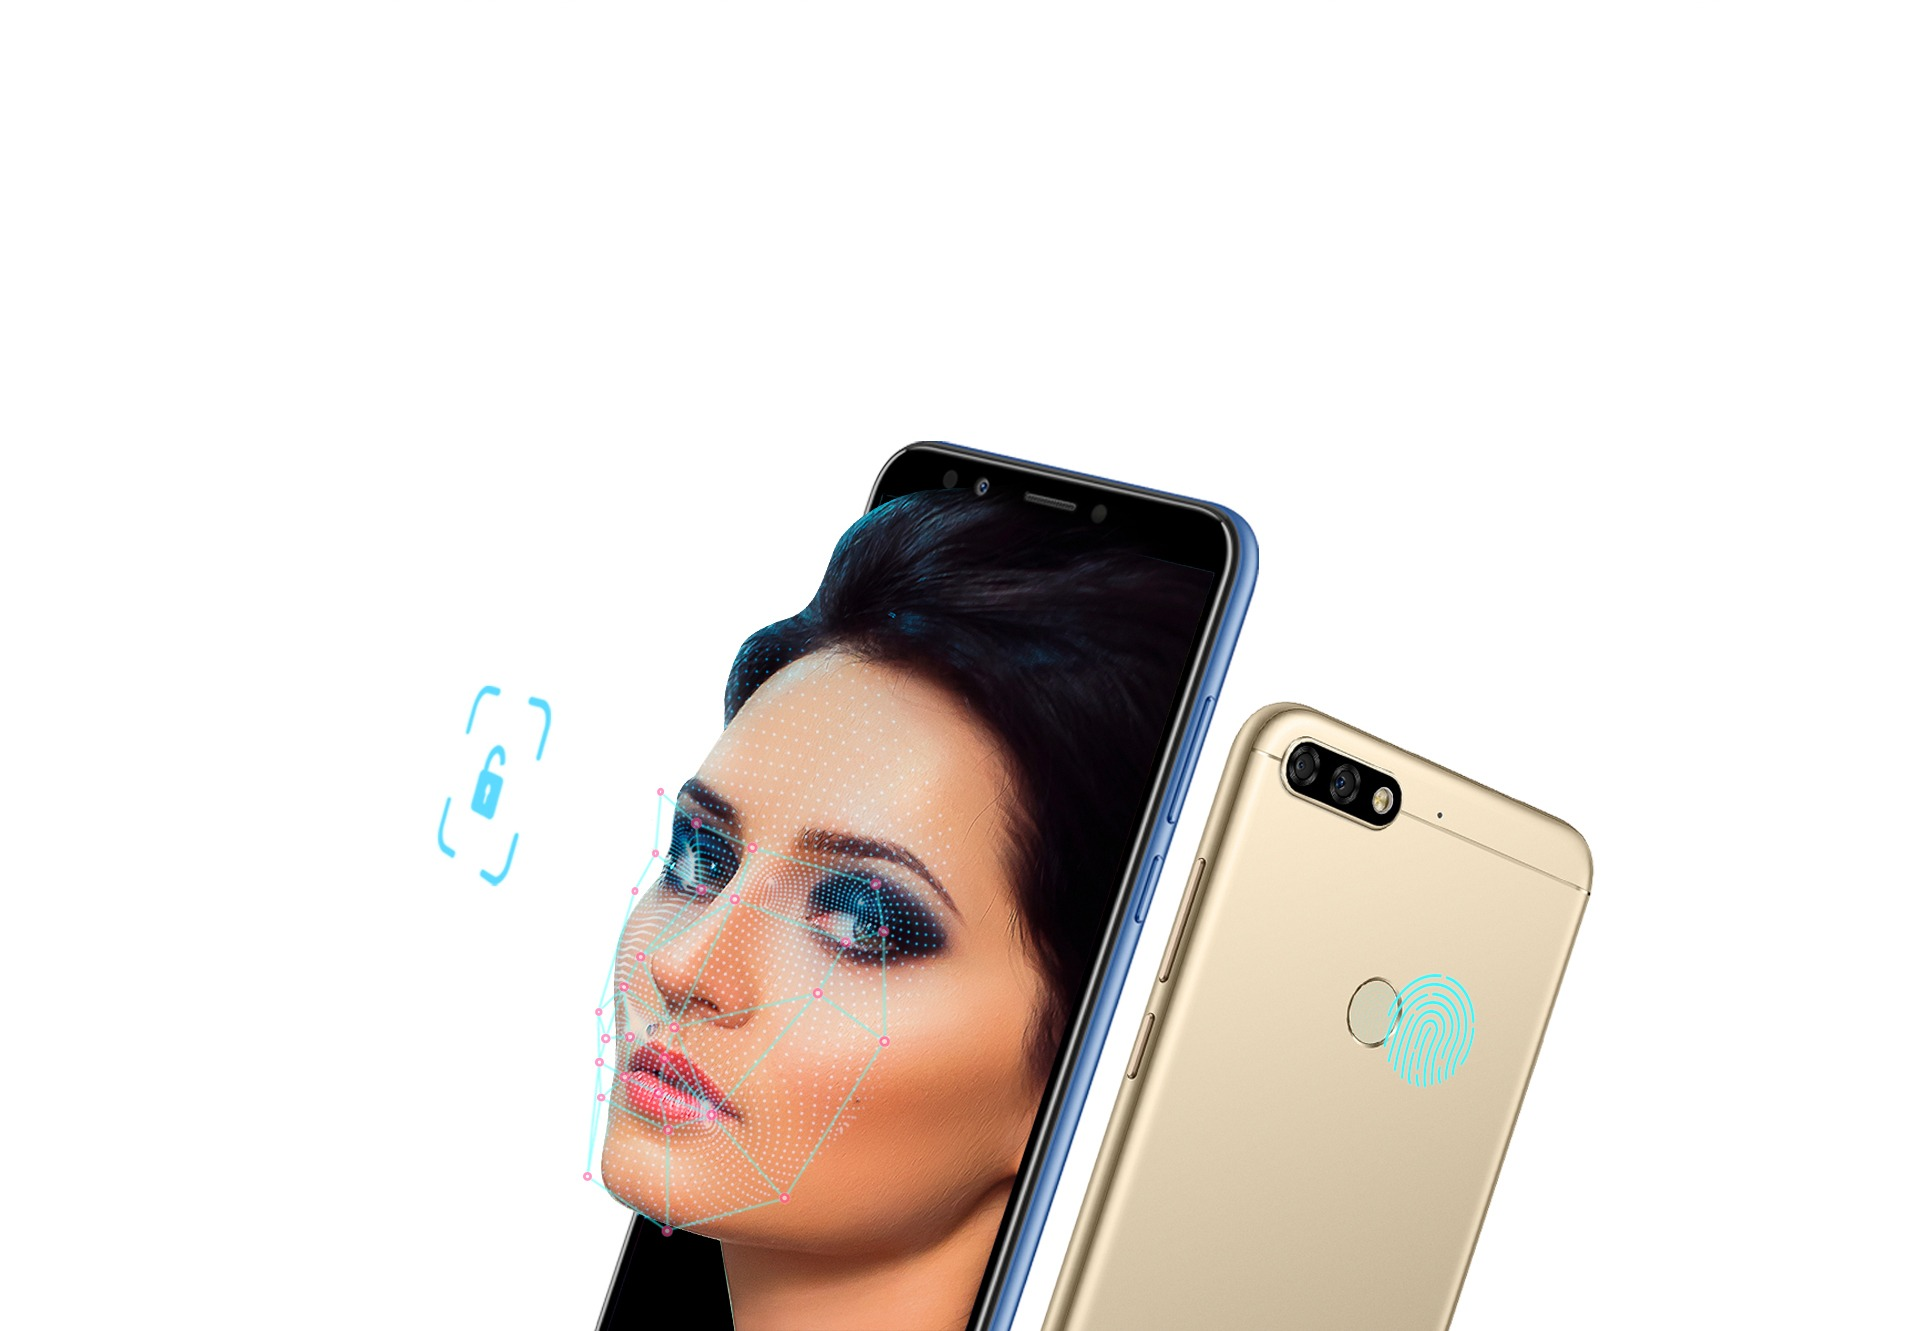 Honor 7A & Honor 7C launched in India - Here's all you need to know 17